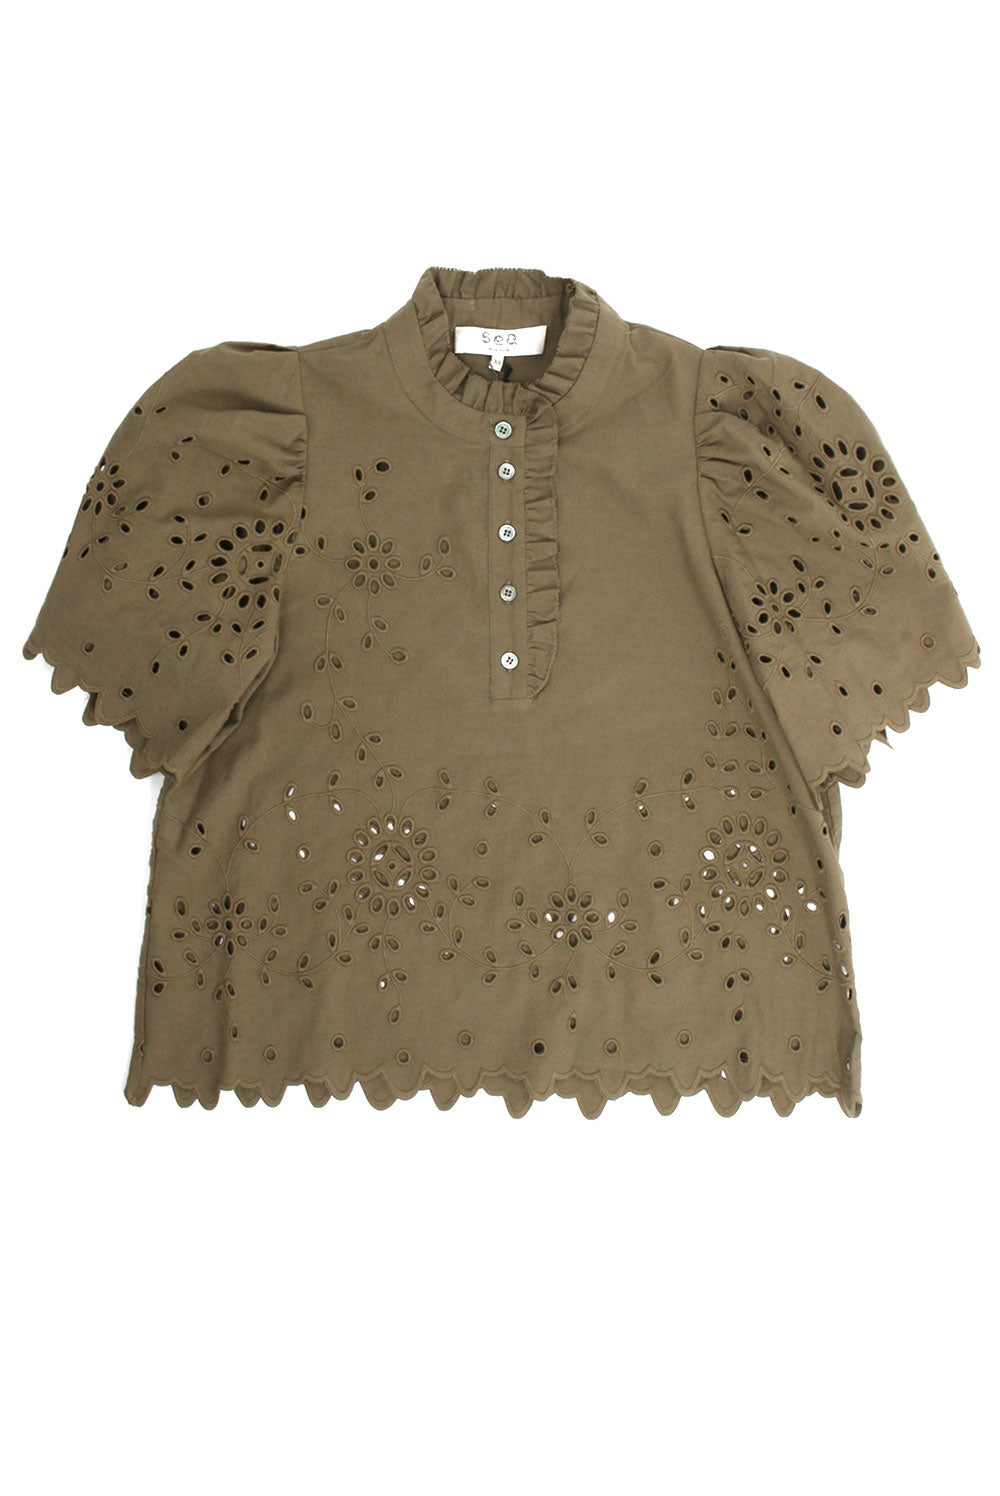 Fern Eyelet Army Top